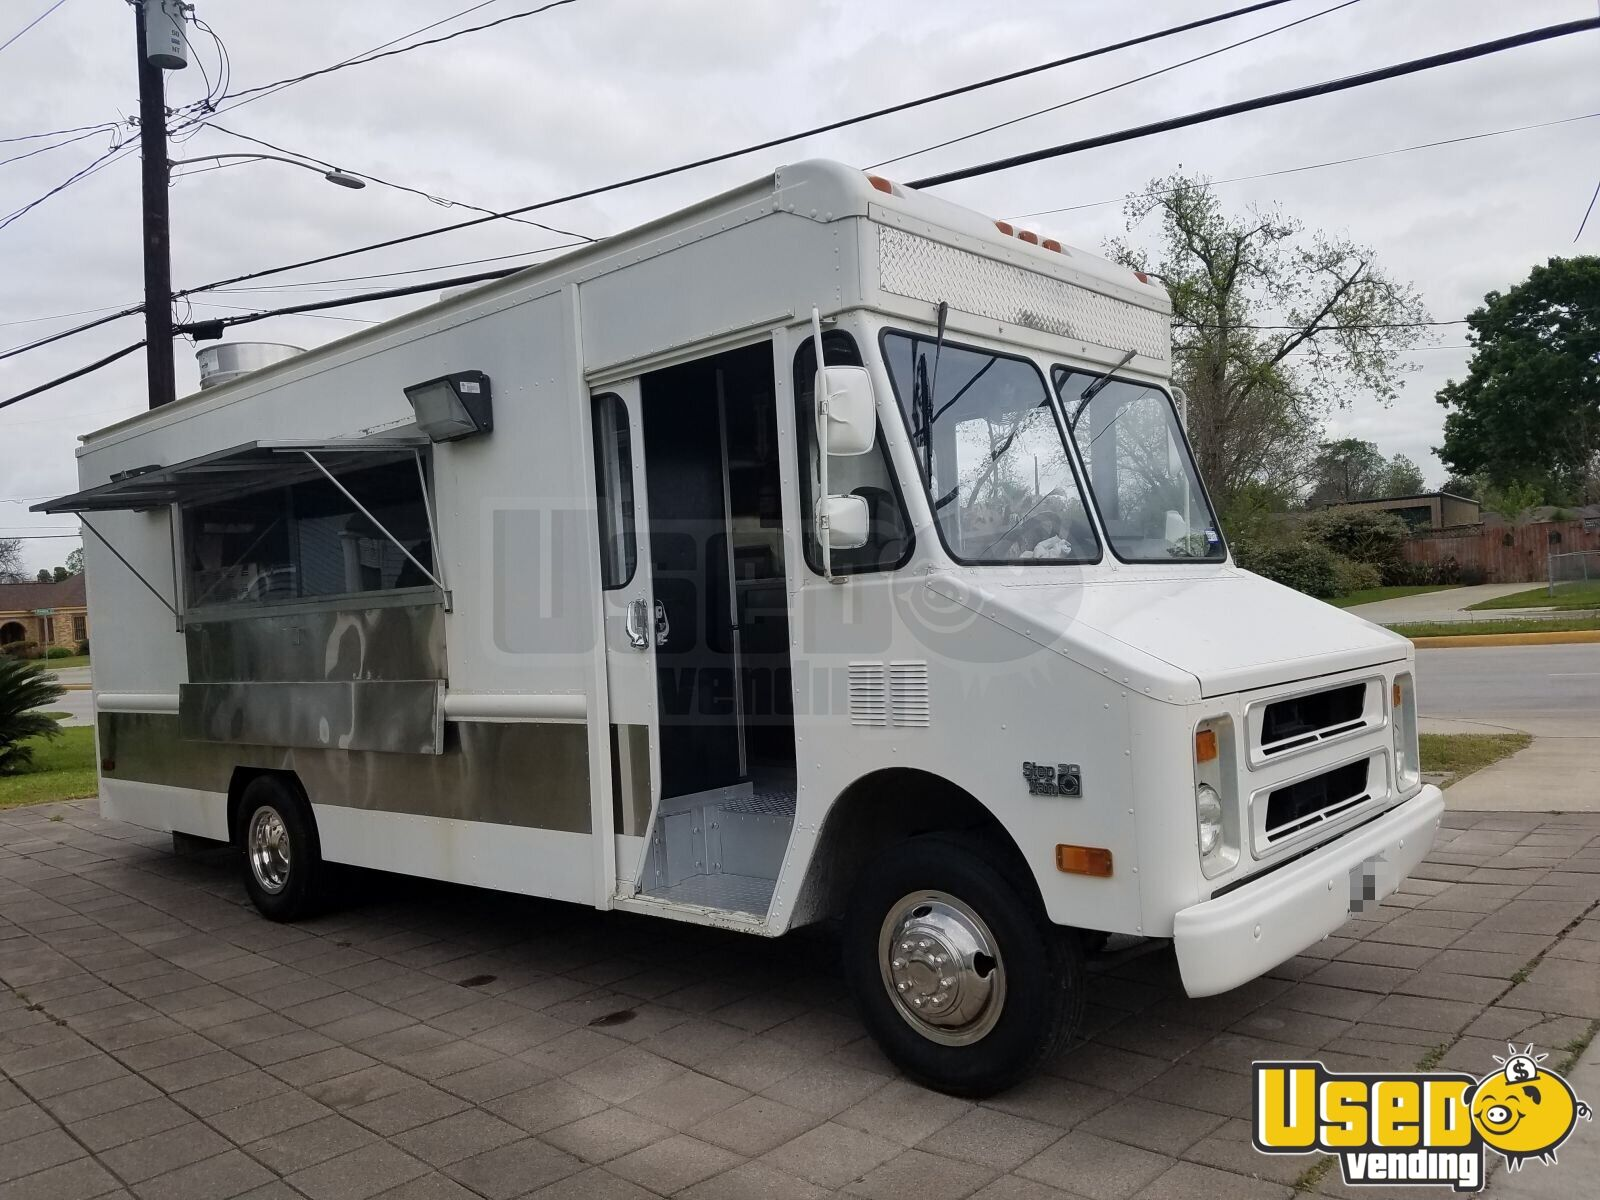 1991 Chevy Step Van Mobile Kitchen Food Truck for Sale in